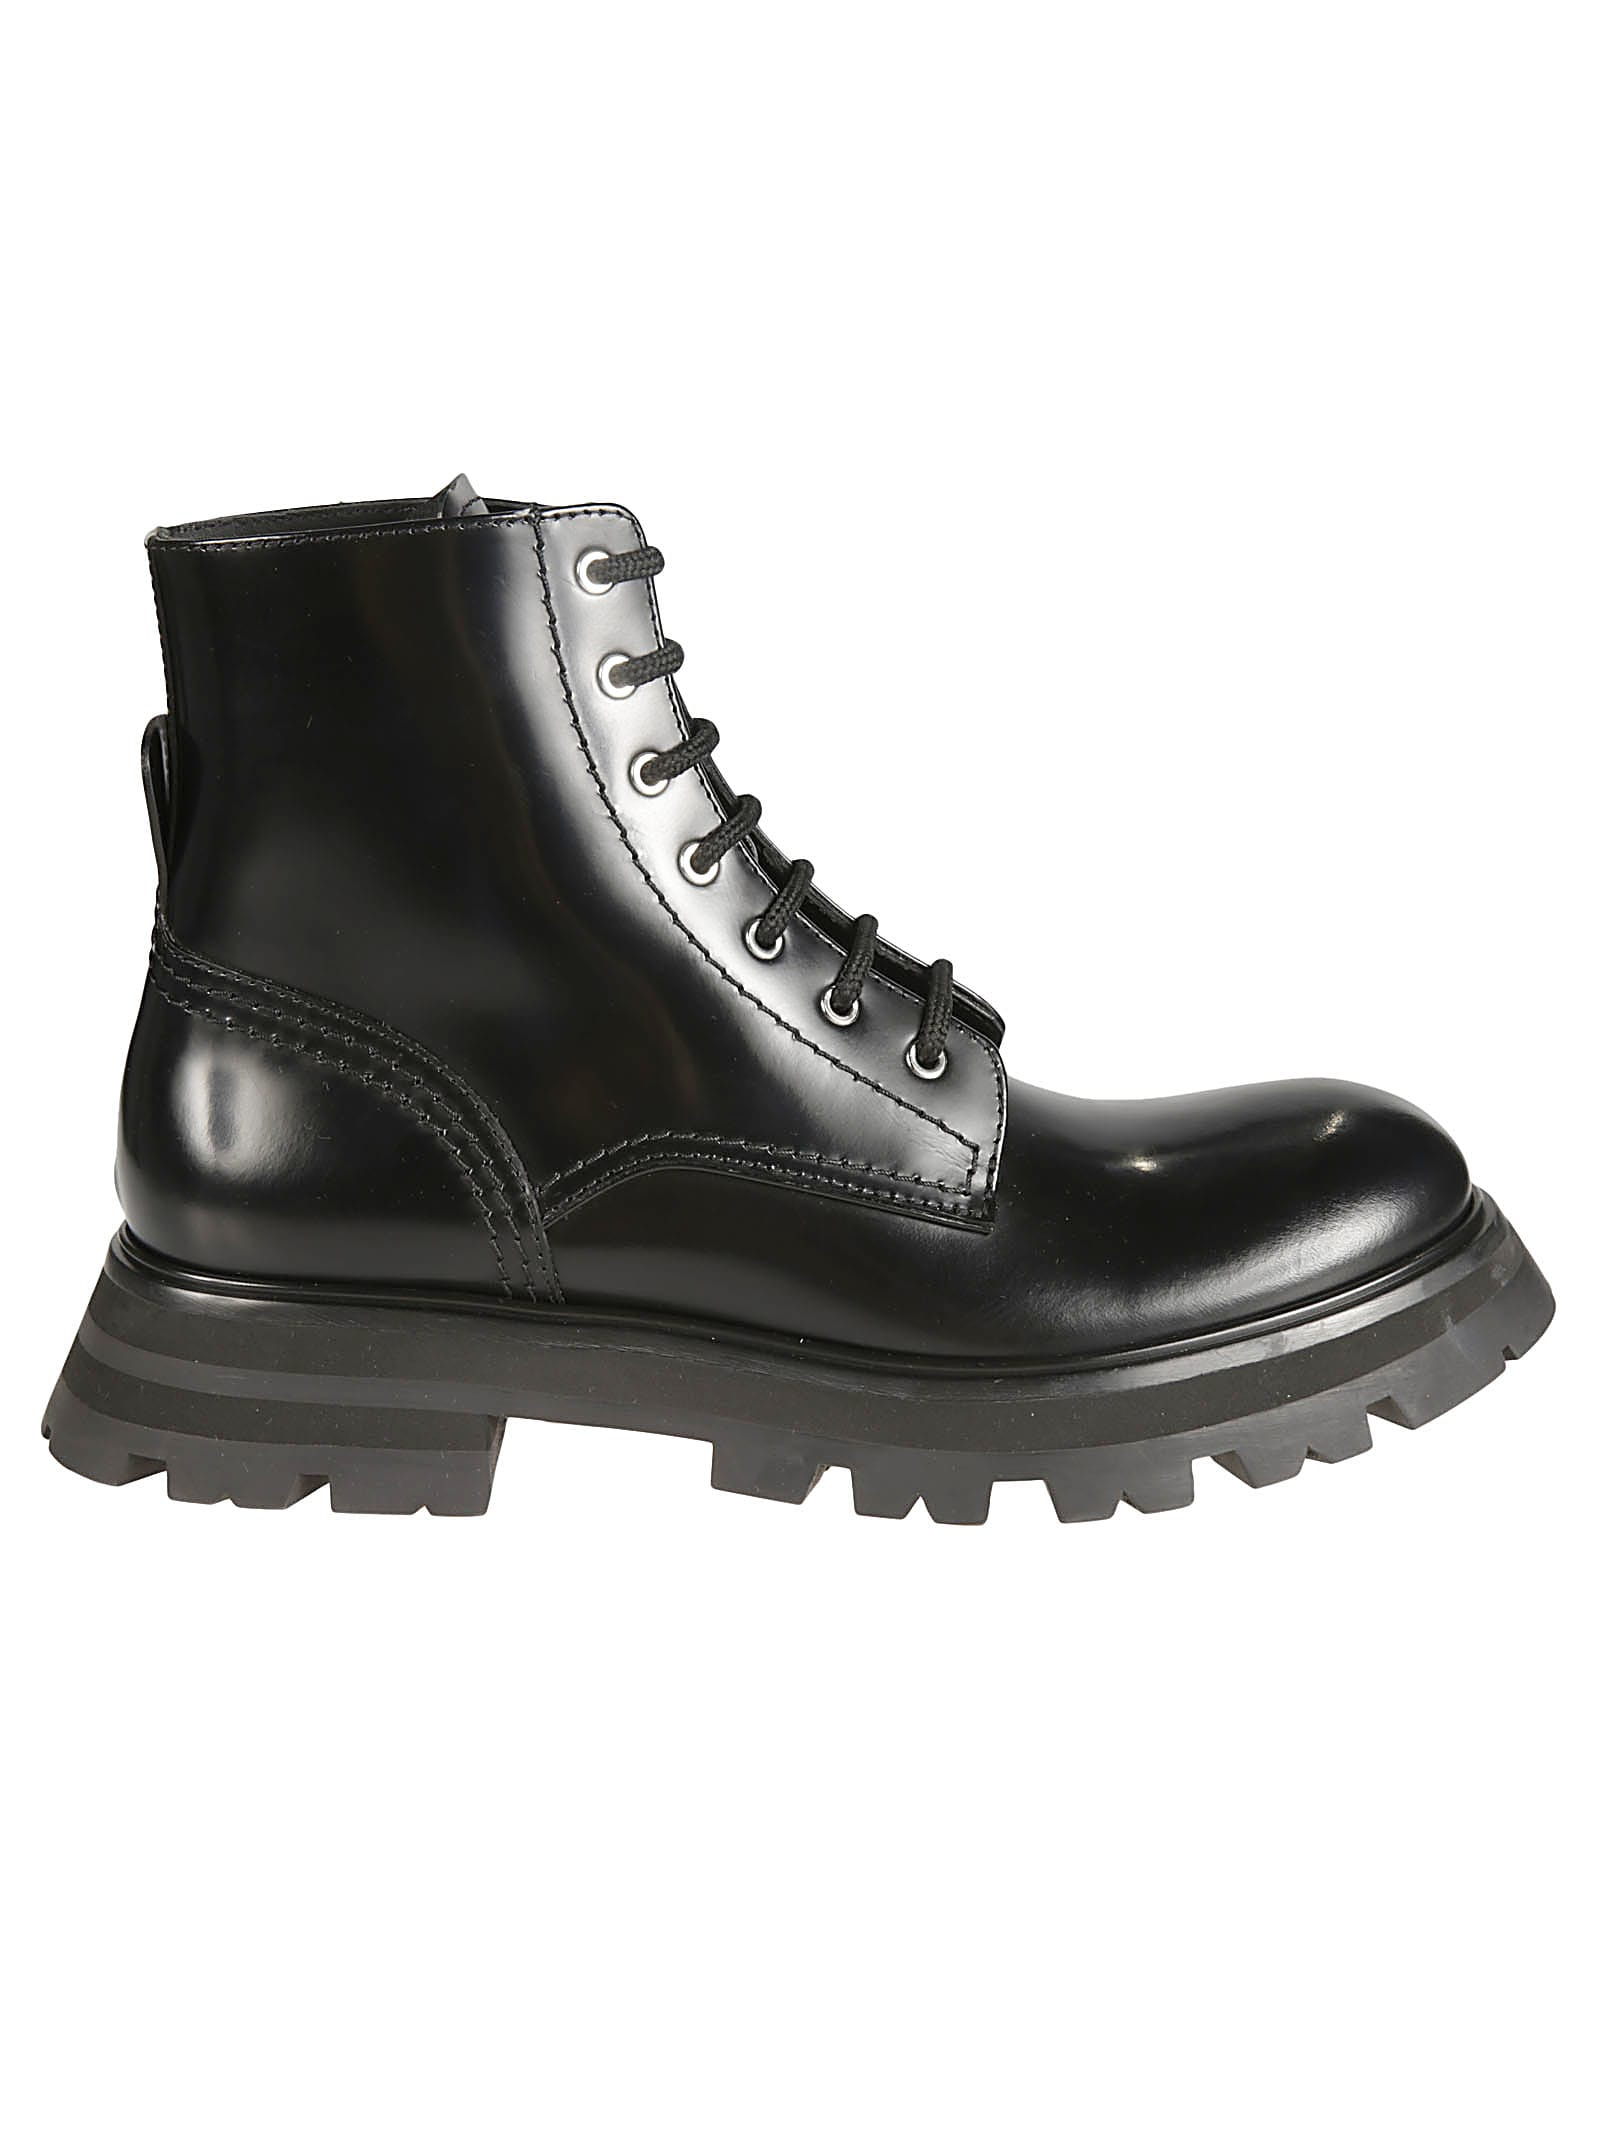 Buy Alexander McQueen Classic Lace-up Boots online, shop Alexander McQueen shoes with free shipping